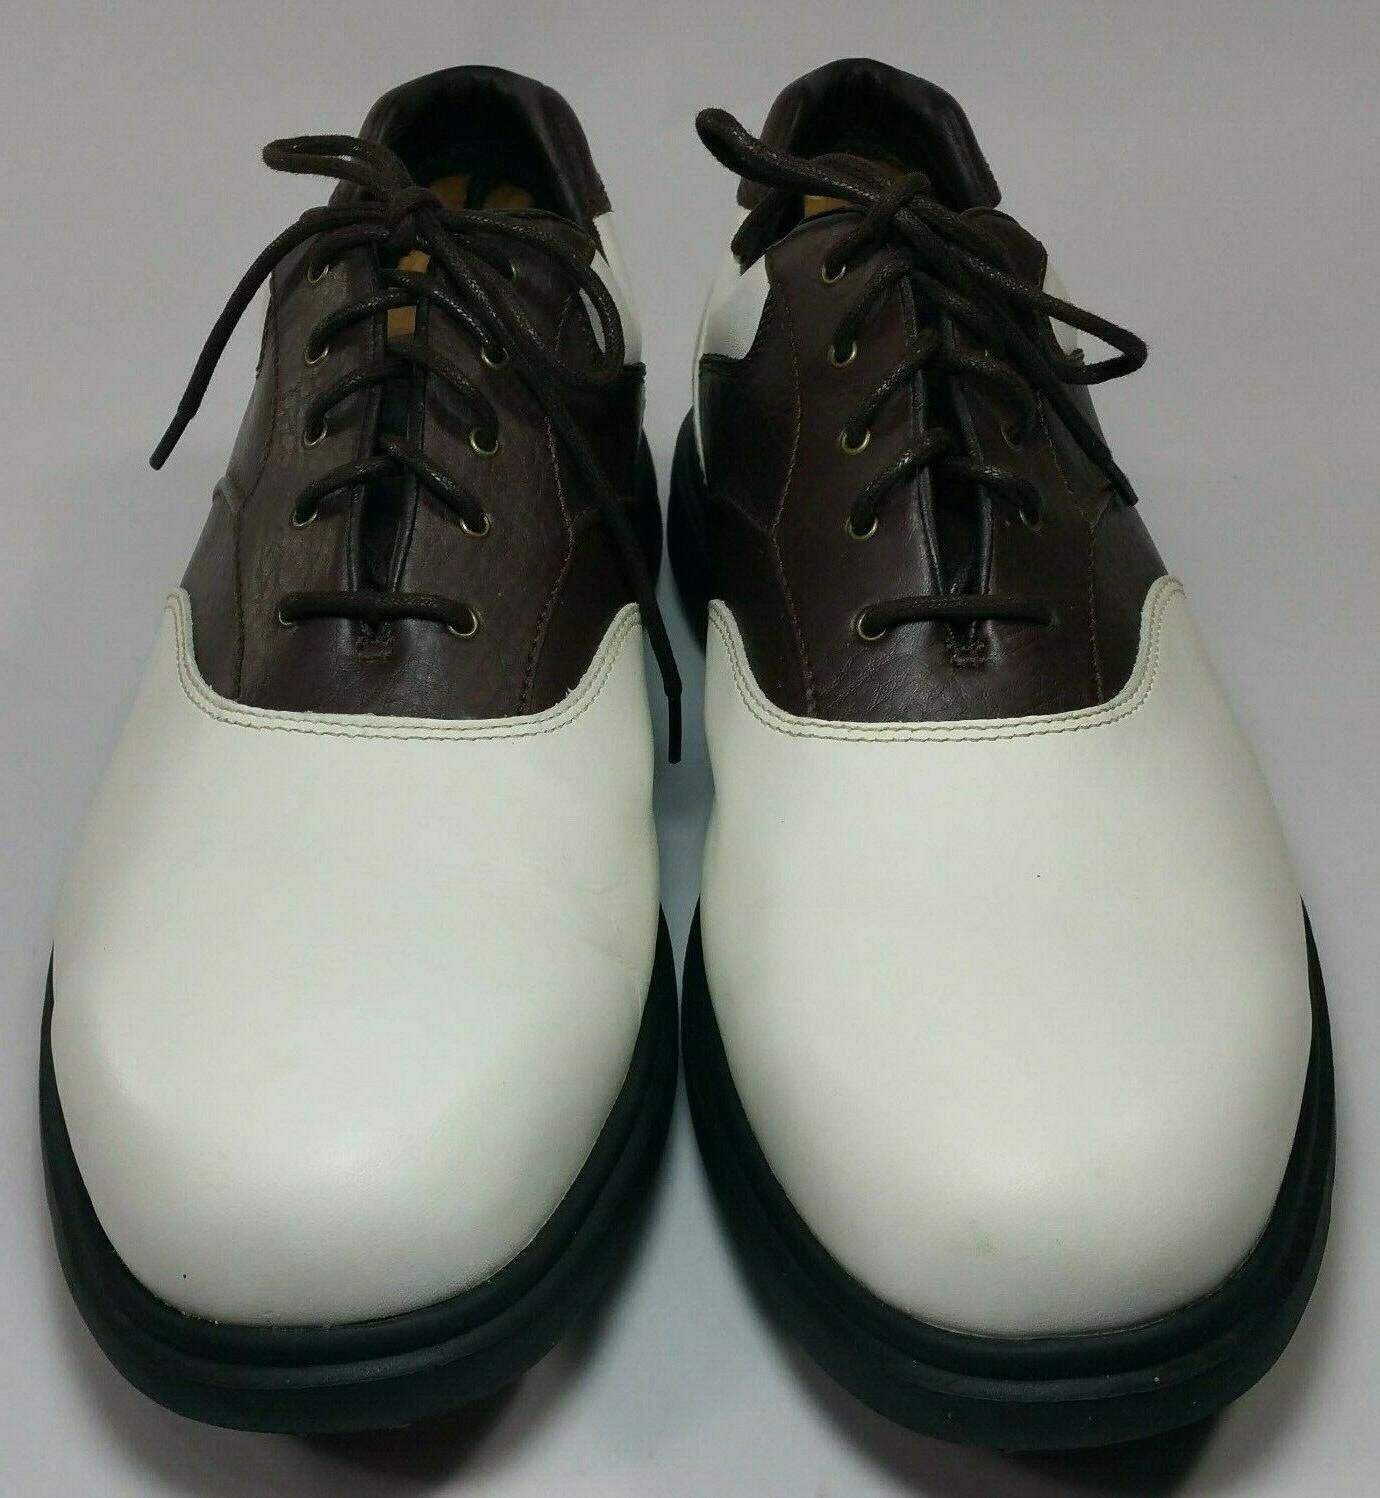 Callaway Golf 11.5 Saddle Spikes NEW